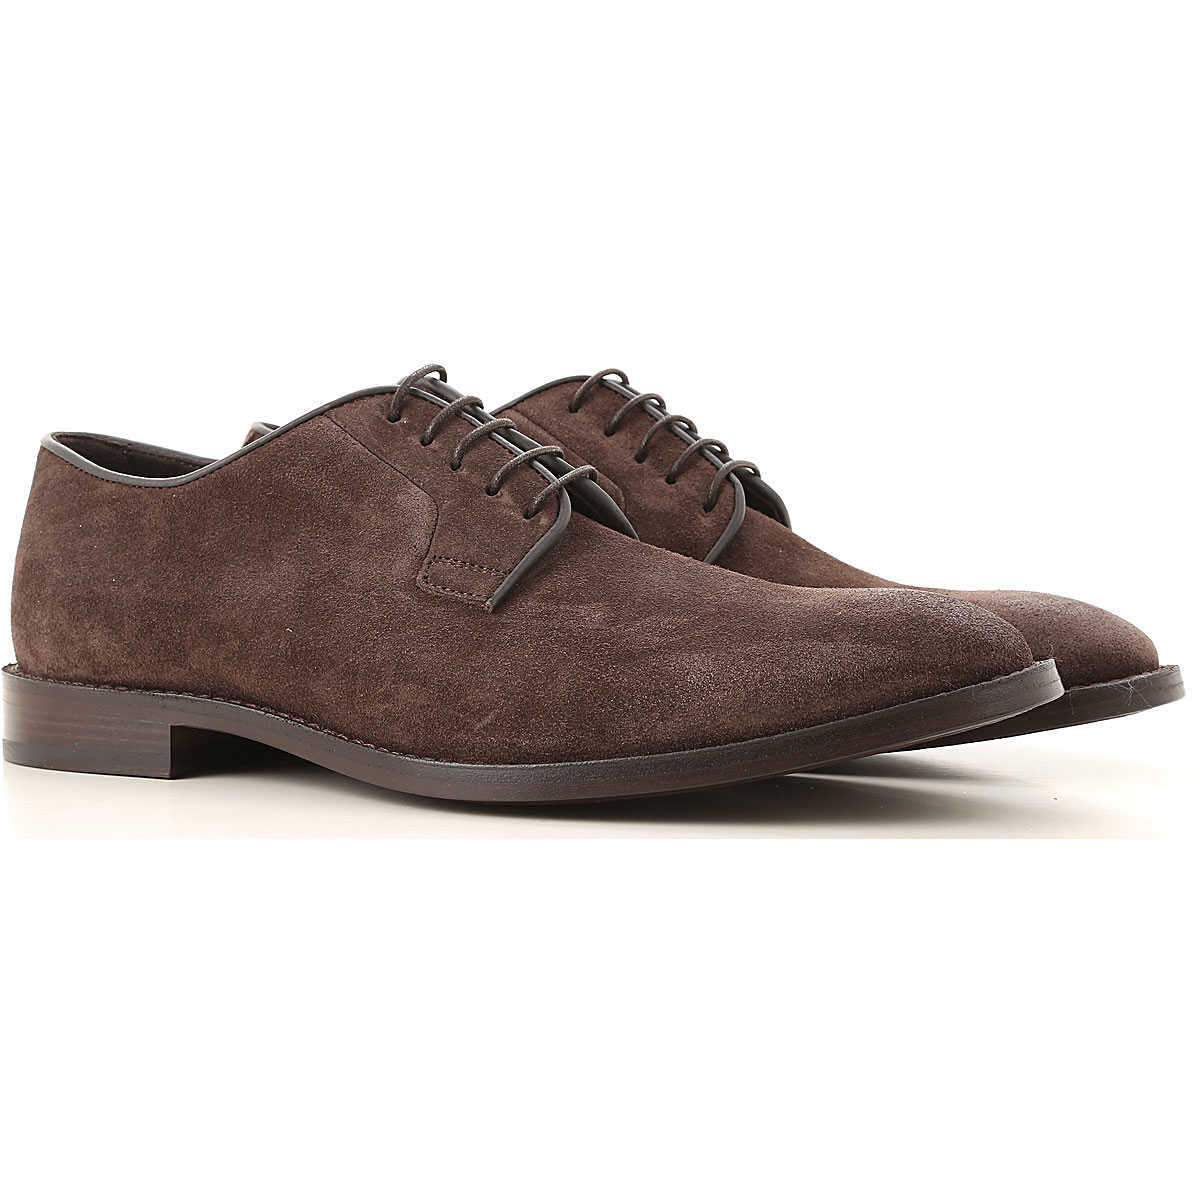 Paul Smith Lace Up Shoes for Men Oxfords Derbies and Brogues On Sale DK - GOOFASH - Mens FORMAL SHOES